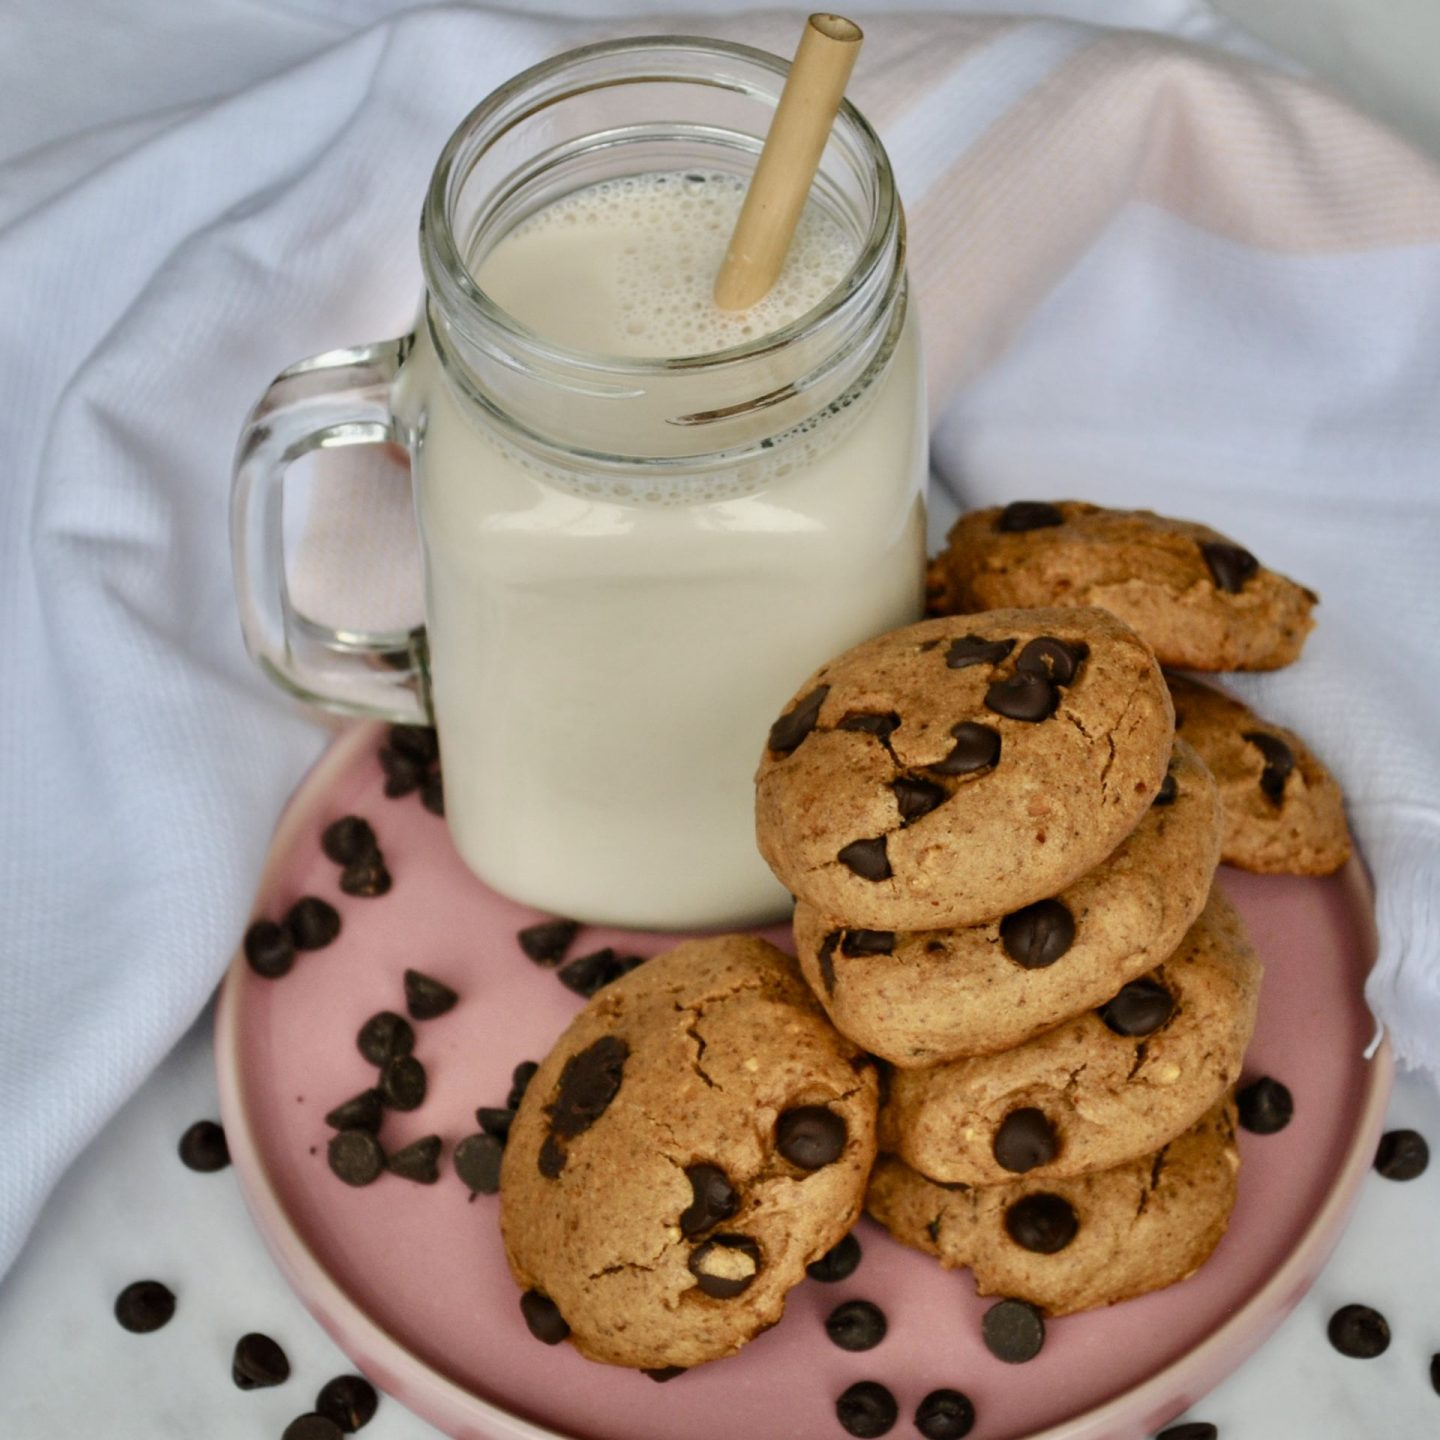 Healthy Chocolate Chip Cookies (Gluten-Free, Oil-Free, Vegan Option)